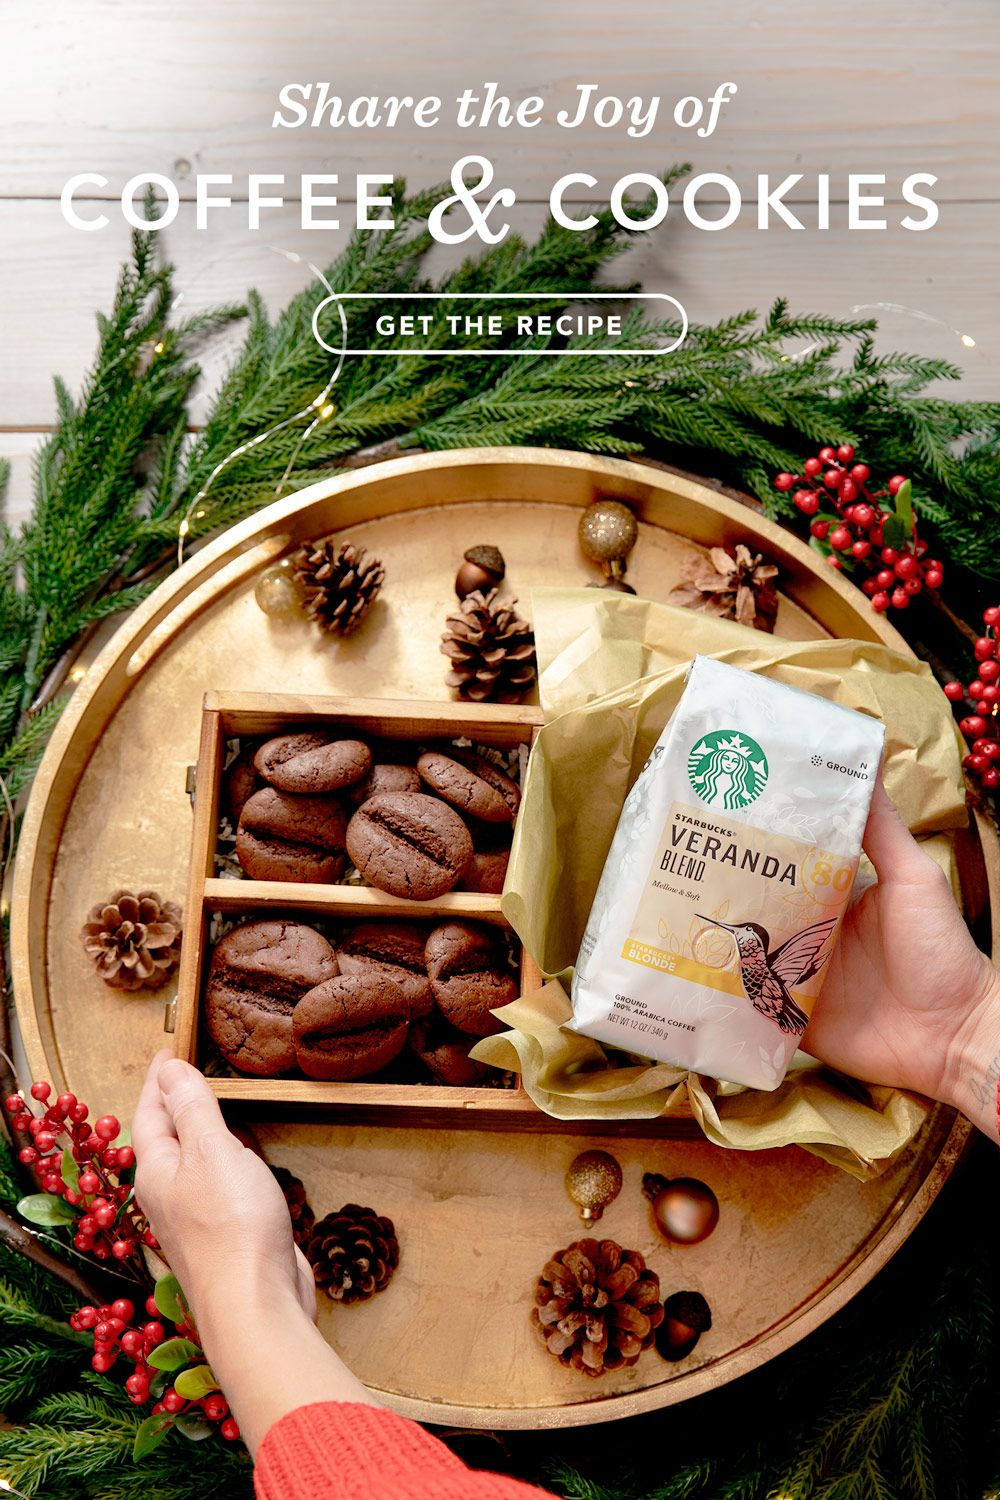 Share The Joy With Neighbors Starbucks At Home Us Holiday Blend Joy Holiday Coffee